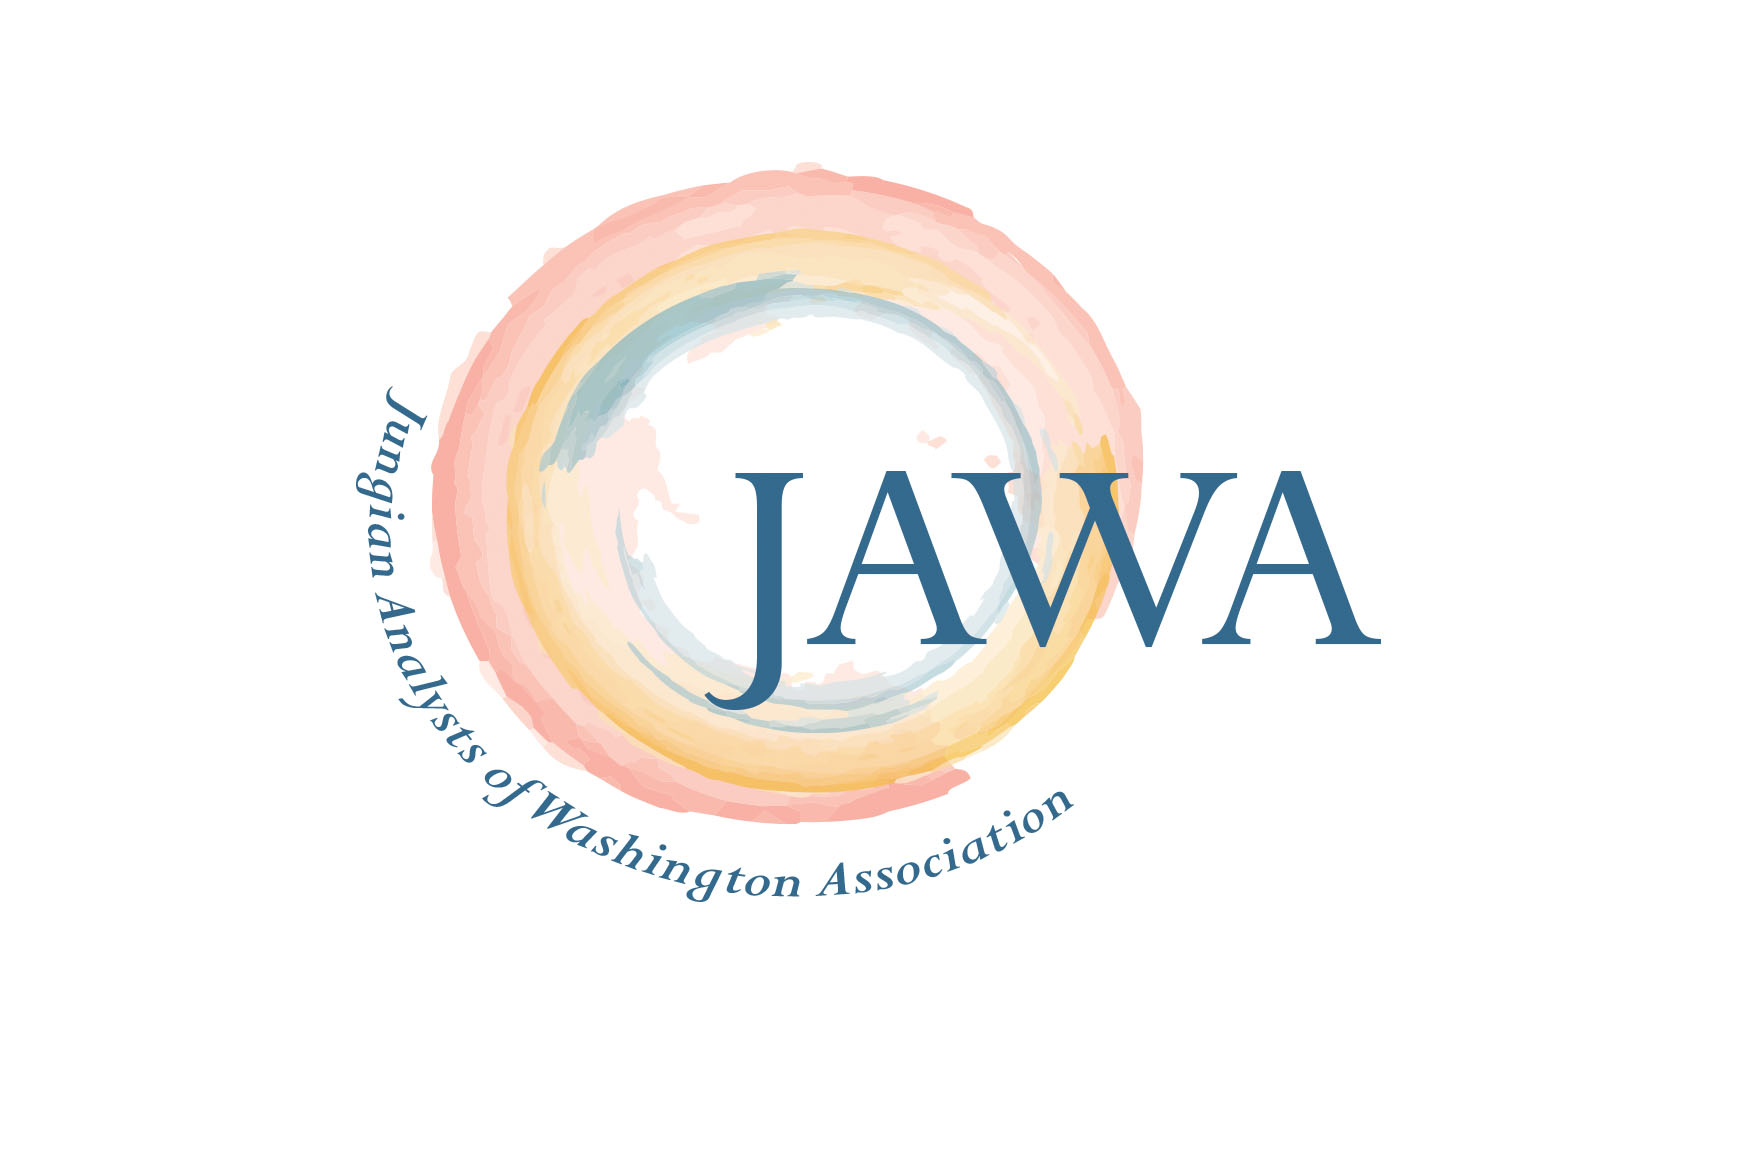 Logo Design | Jungian Analysts of Washington Association by Rockfish Media | Maryland Businesses | Branding